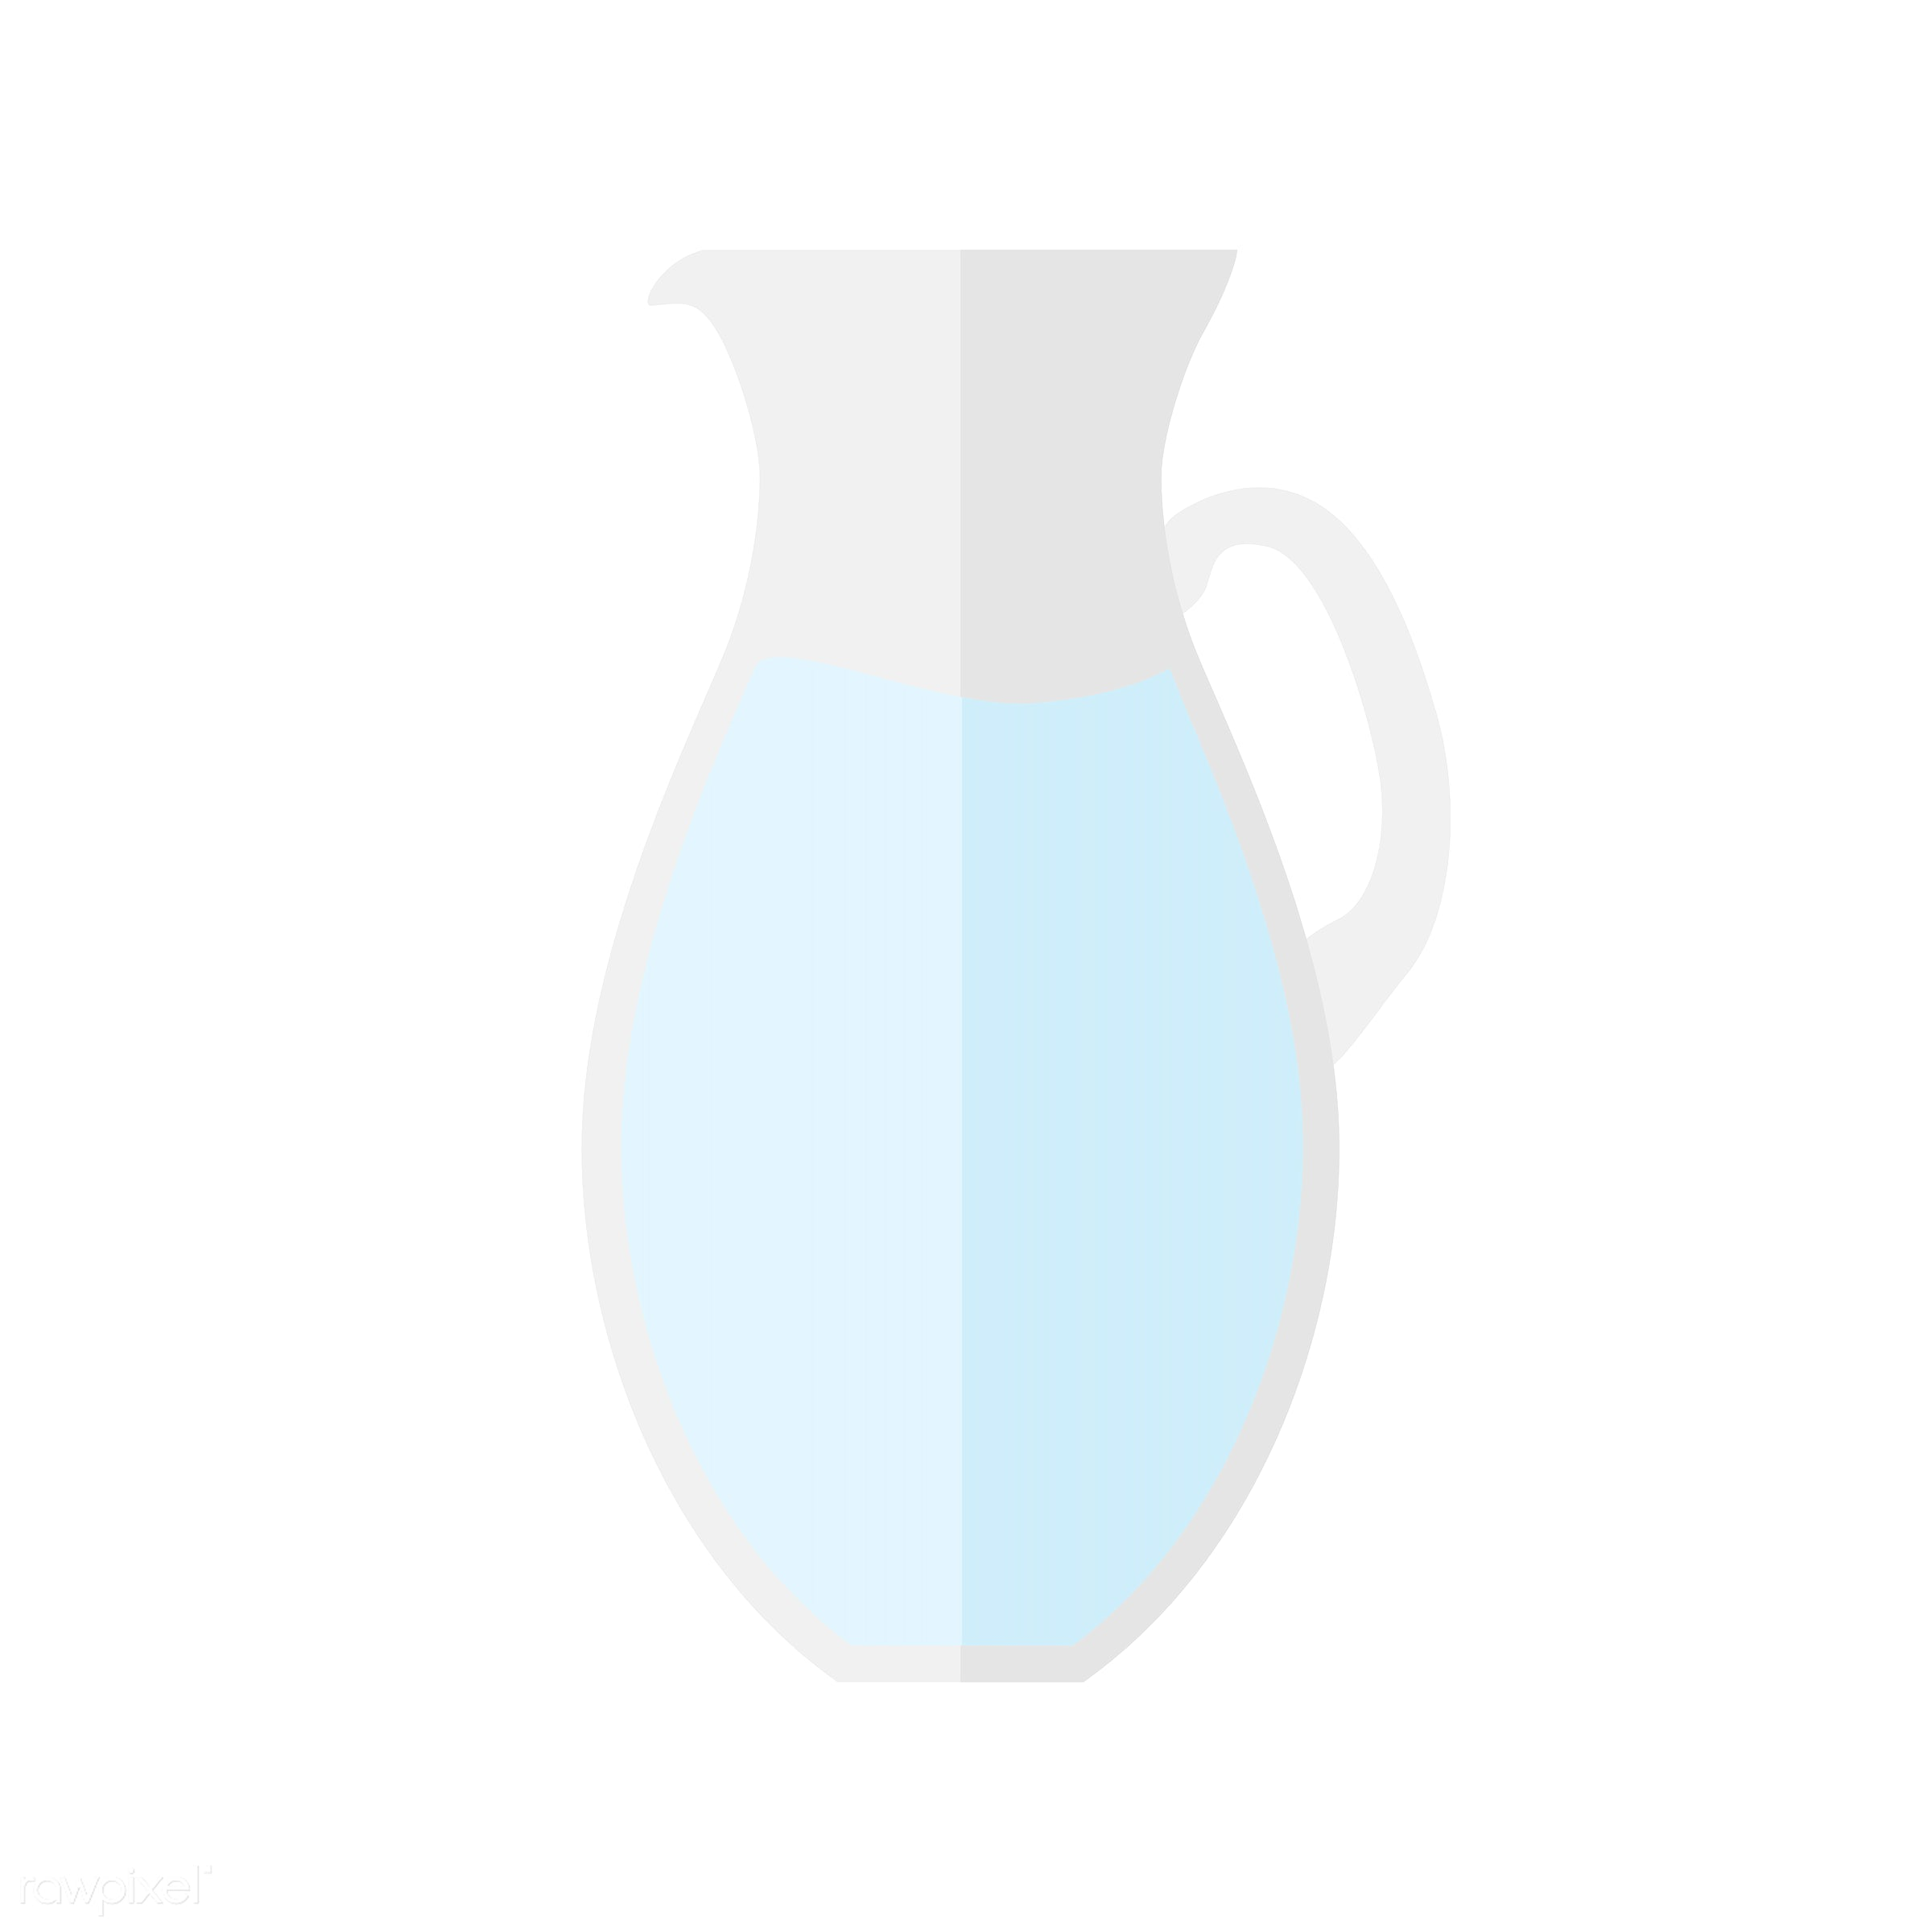 vector, graphic, illustration, icon, symbol, colorful, cute, drink, beverage, water